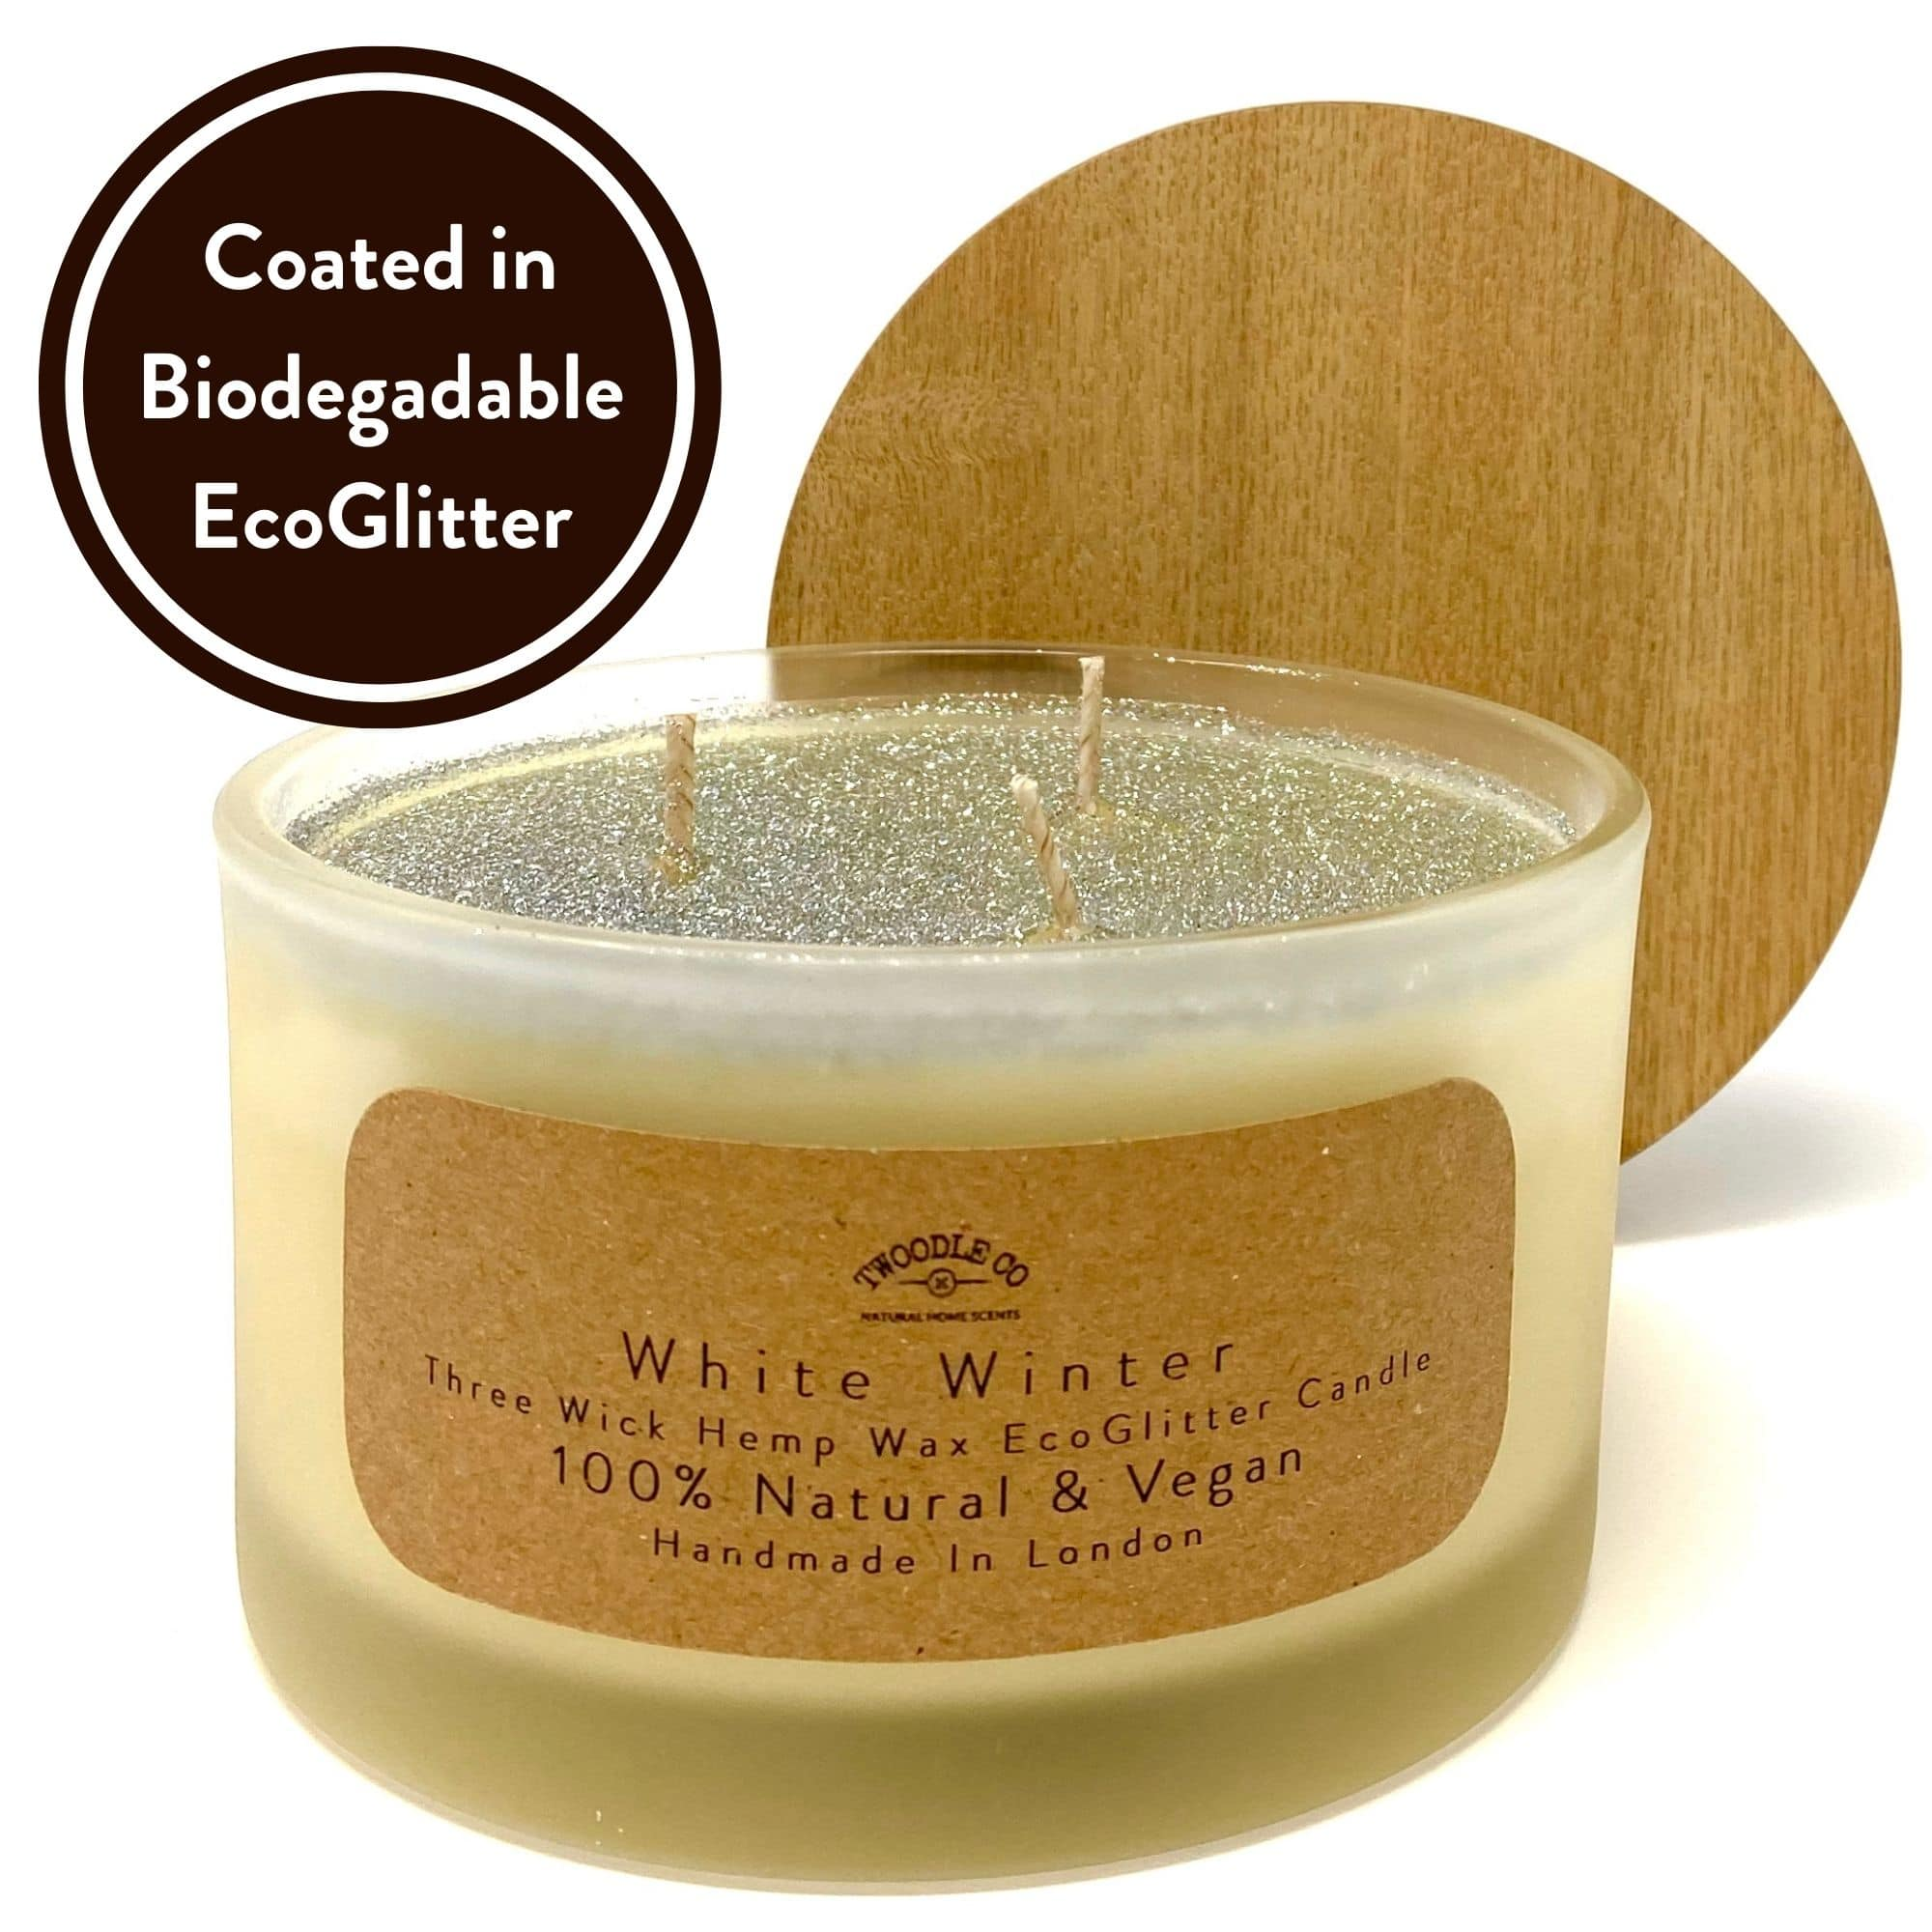 White Winter Three wick scented candle coated in biodegradable Eco Glitter by Twoodle Co Natural Home Scents